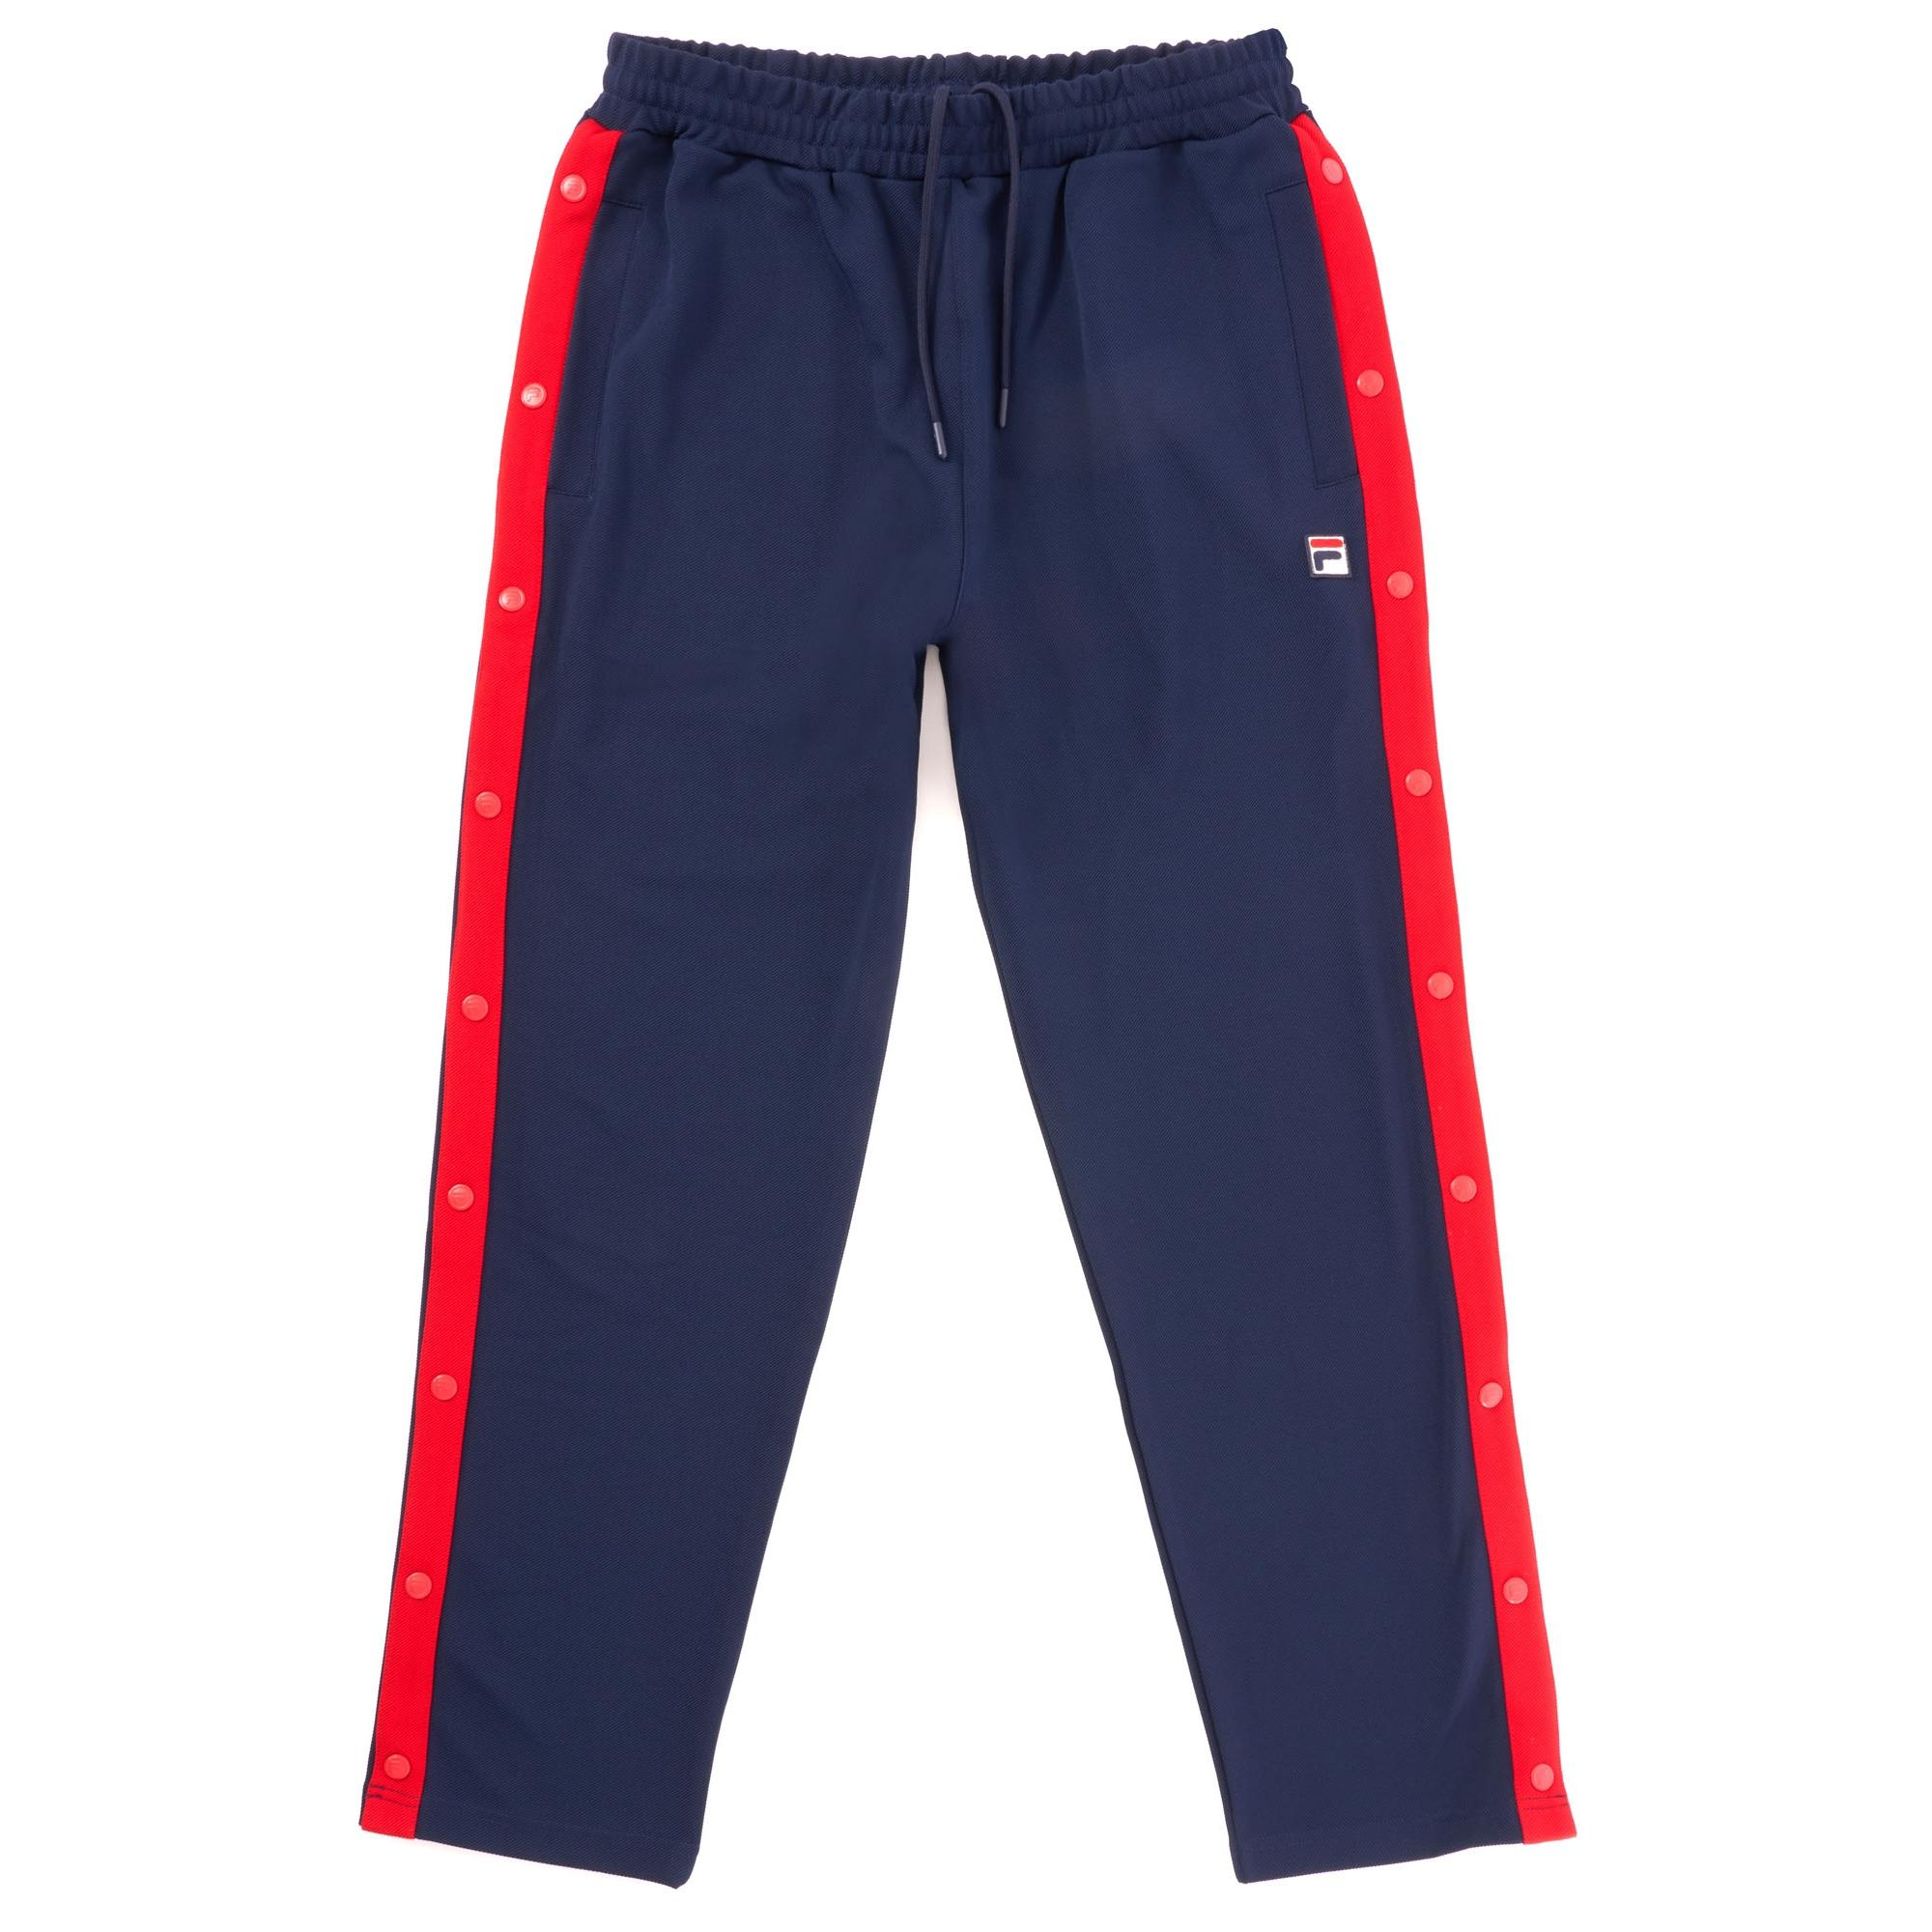 16cd9673d04a2 Lyst - Fila Vintage Friars Tearaway Track Pants - Peacoat & Red in ...